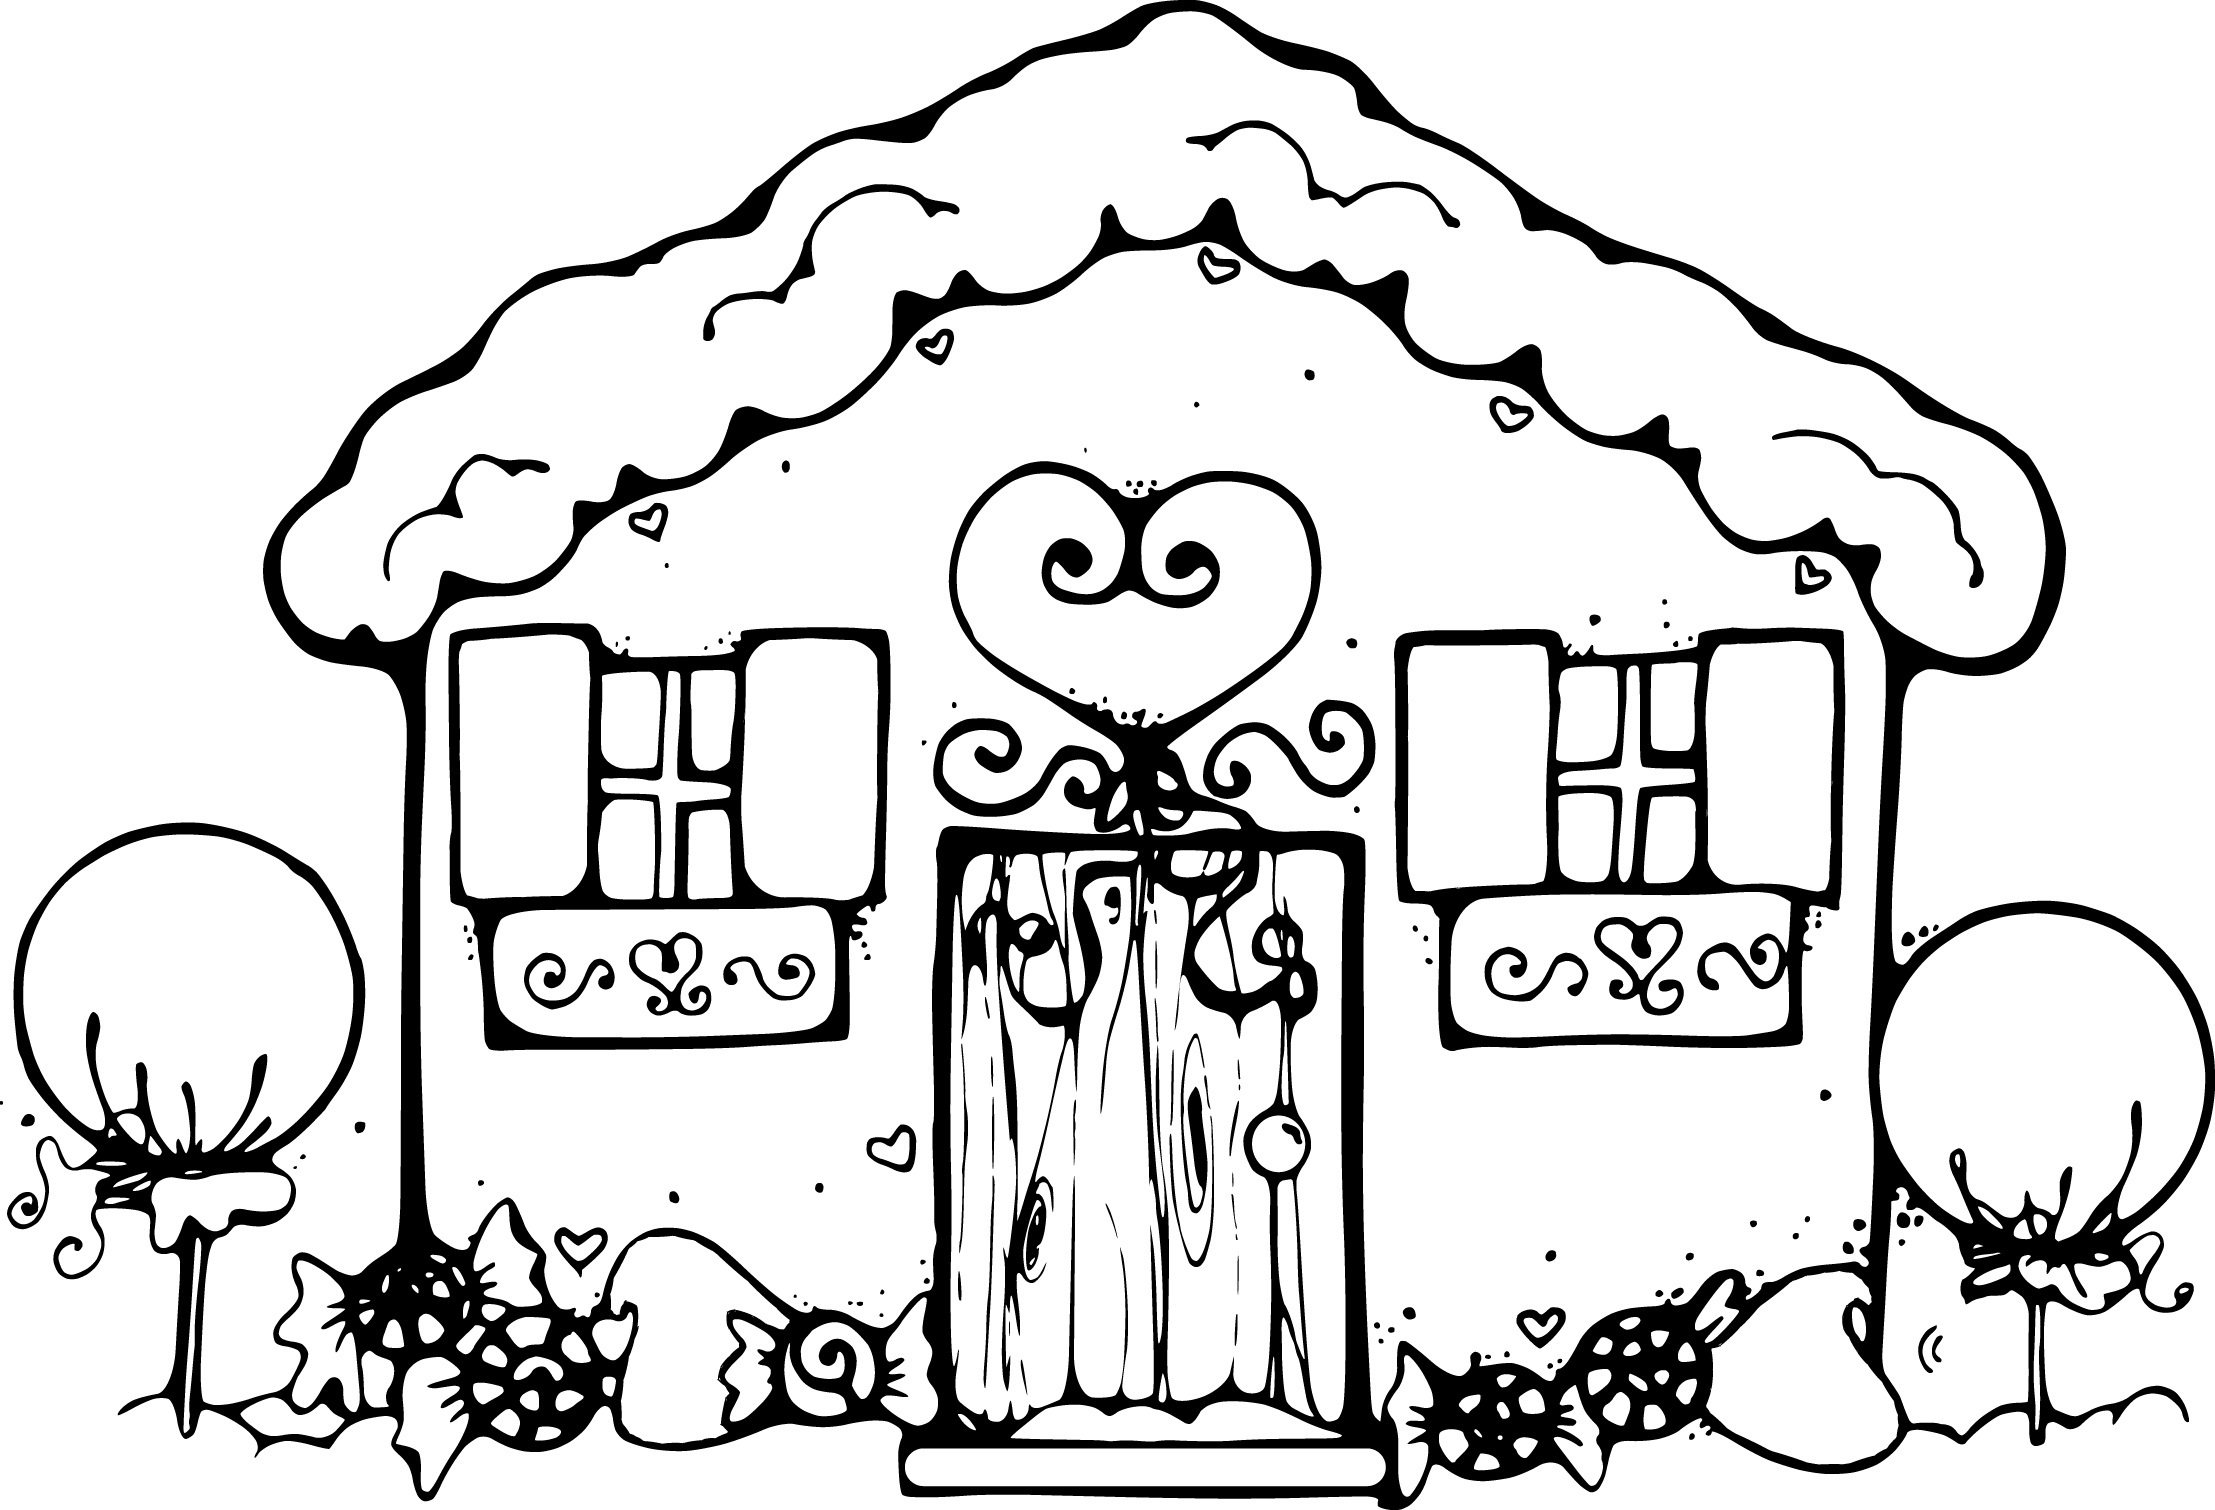 Coloring Pages Gingerbread Houses Coloring Pages free printable snowflake coloring pages for kids gingerbread house to print